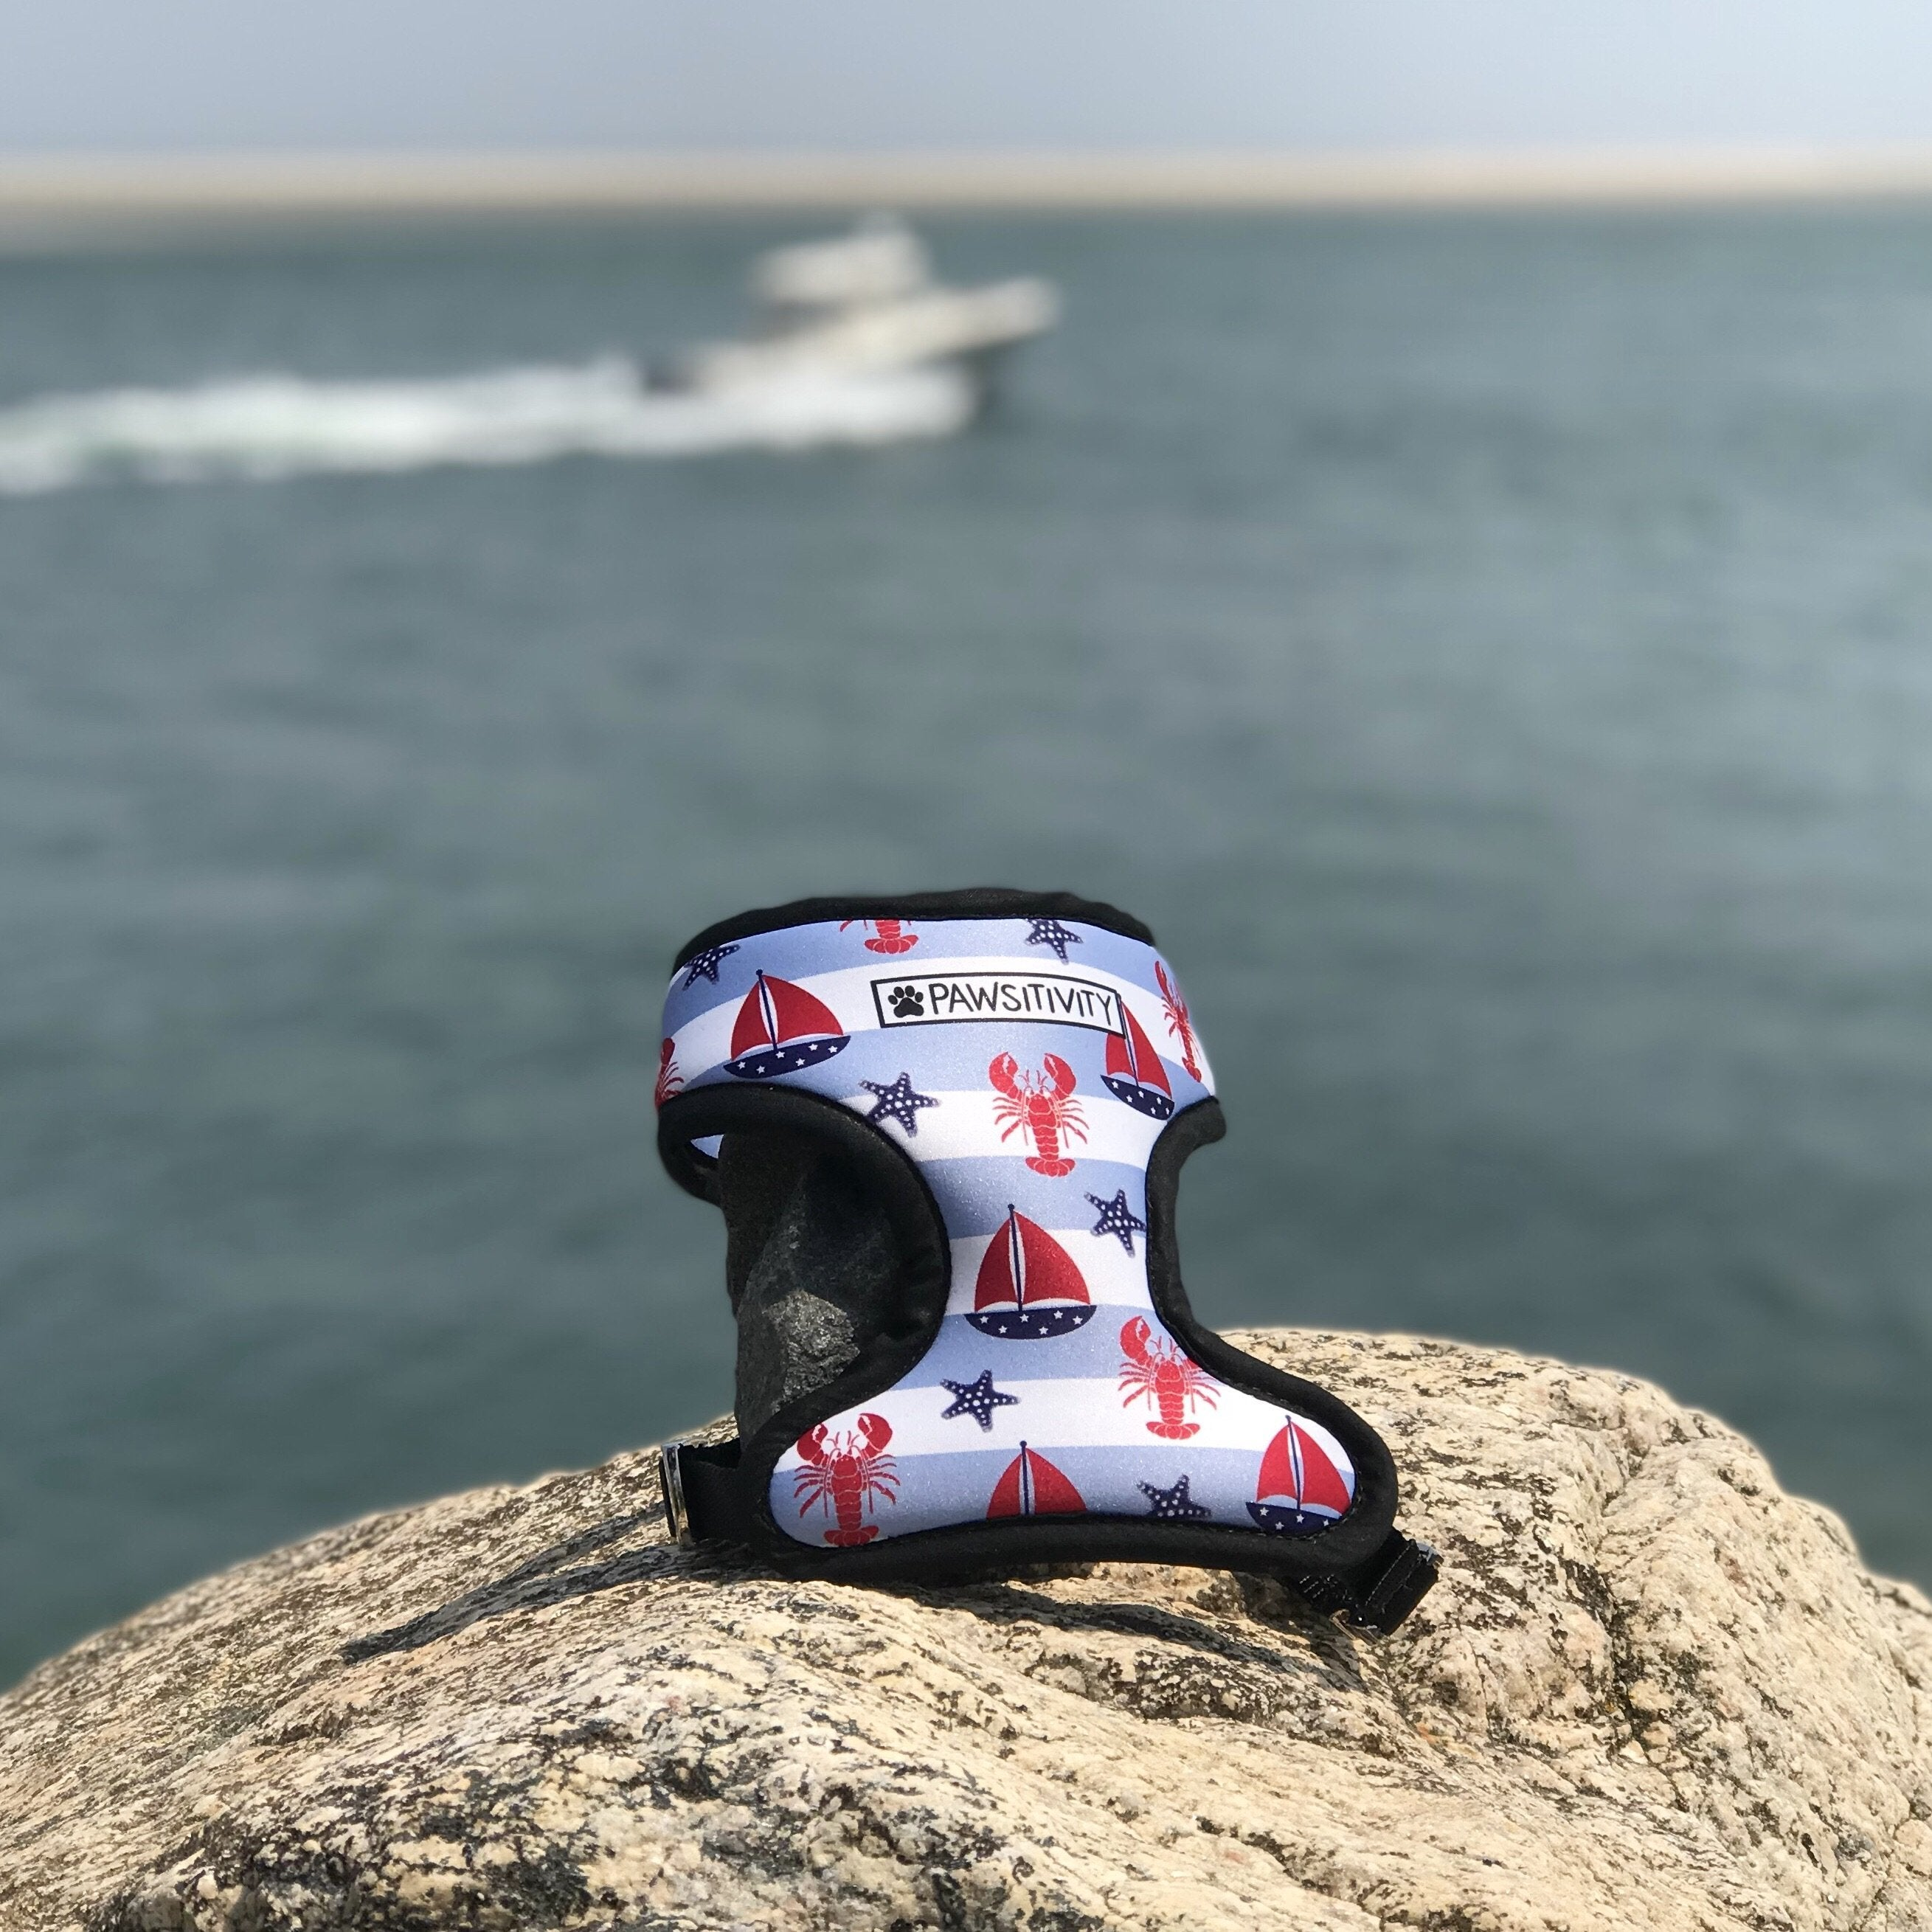 Pawsitivity Reversible Harness - Nautical & Anchor Harness